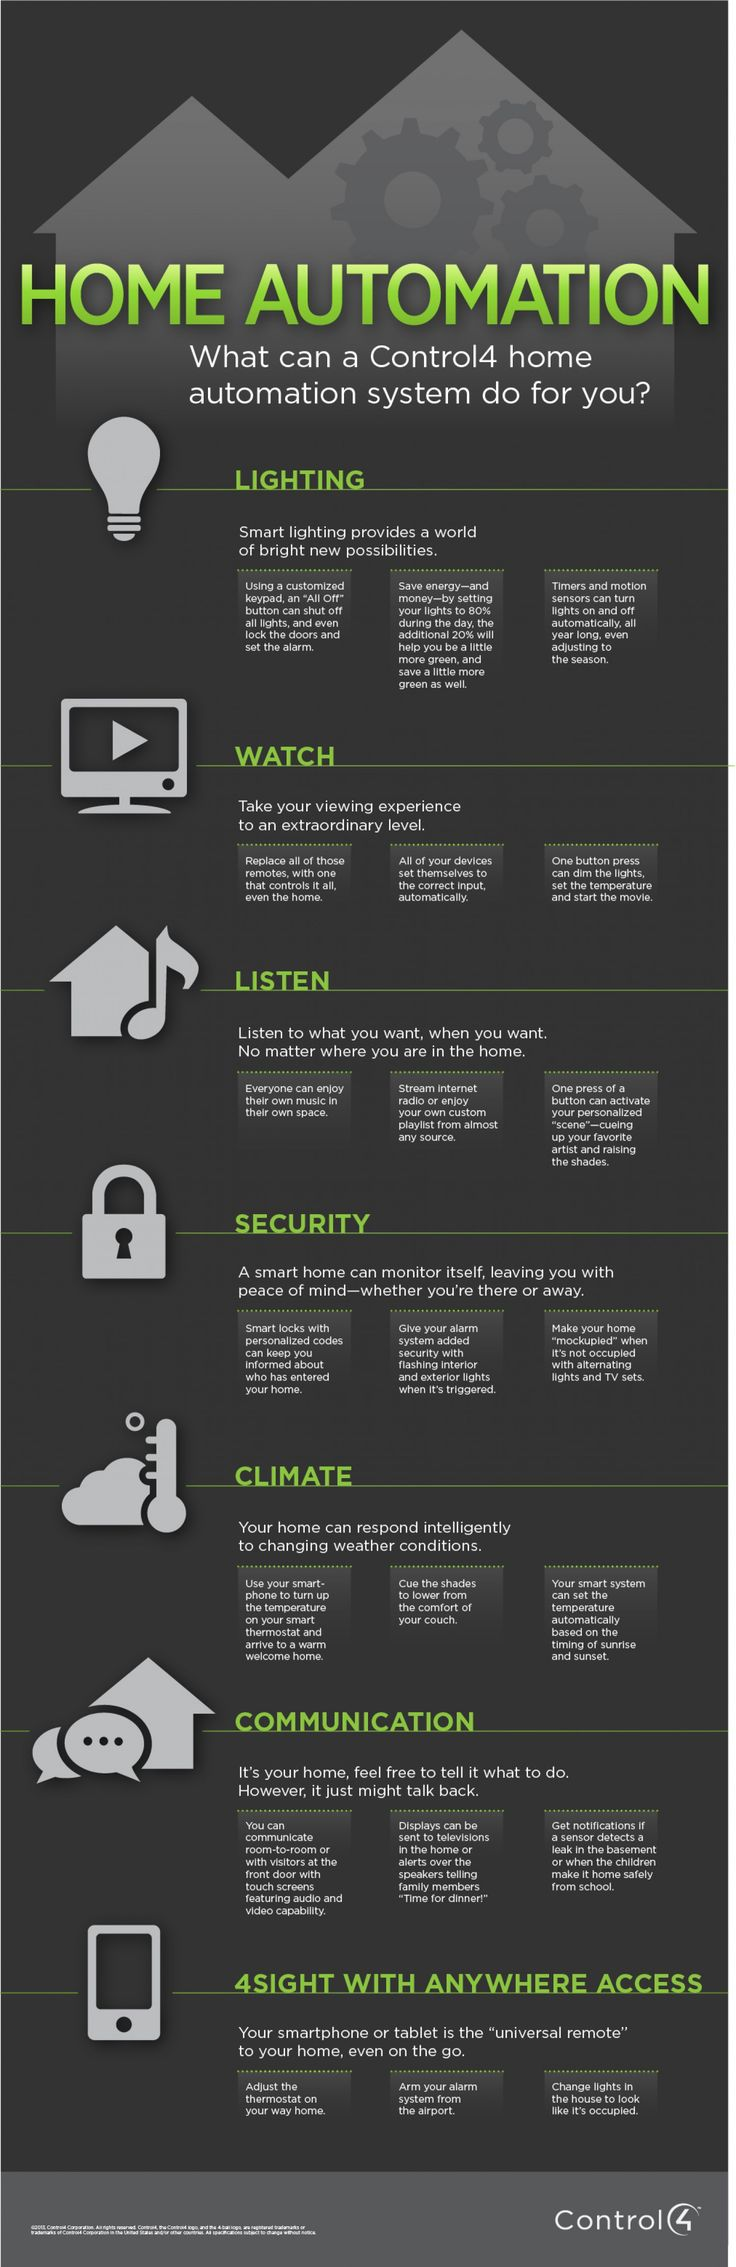 What Can A Home Automation System Do For You? visual.ly